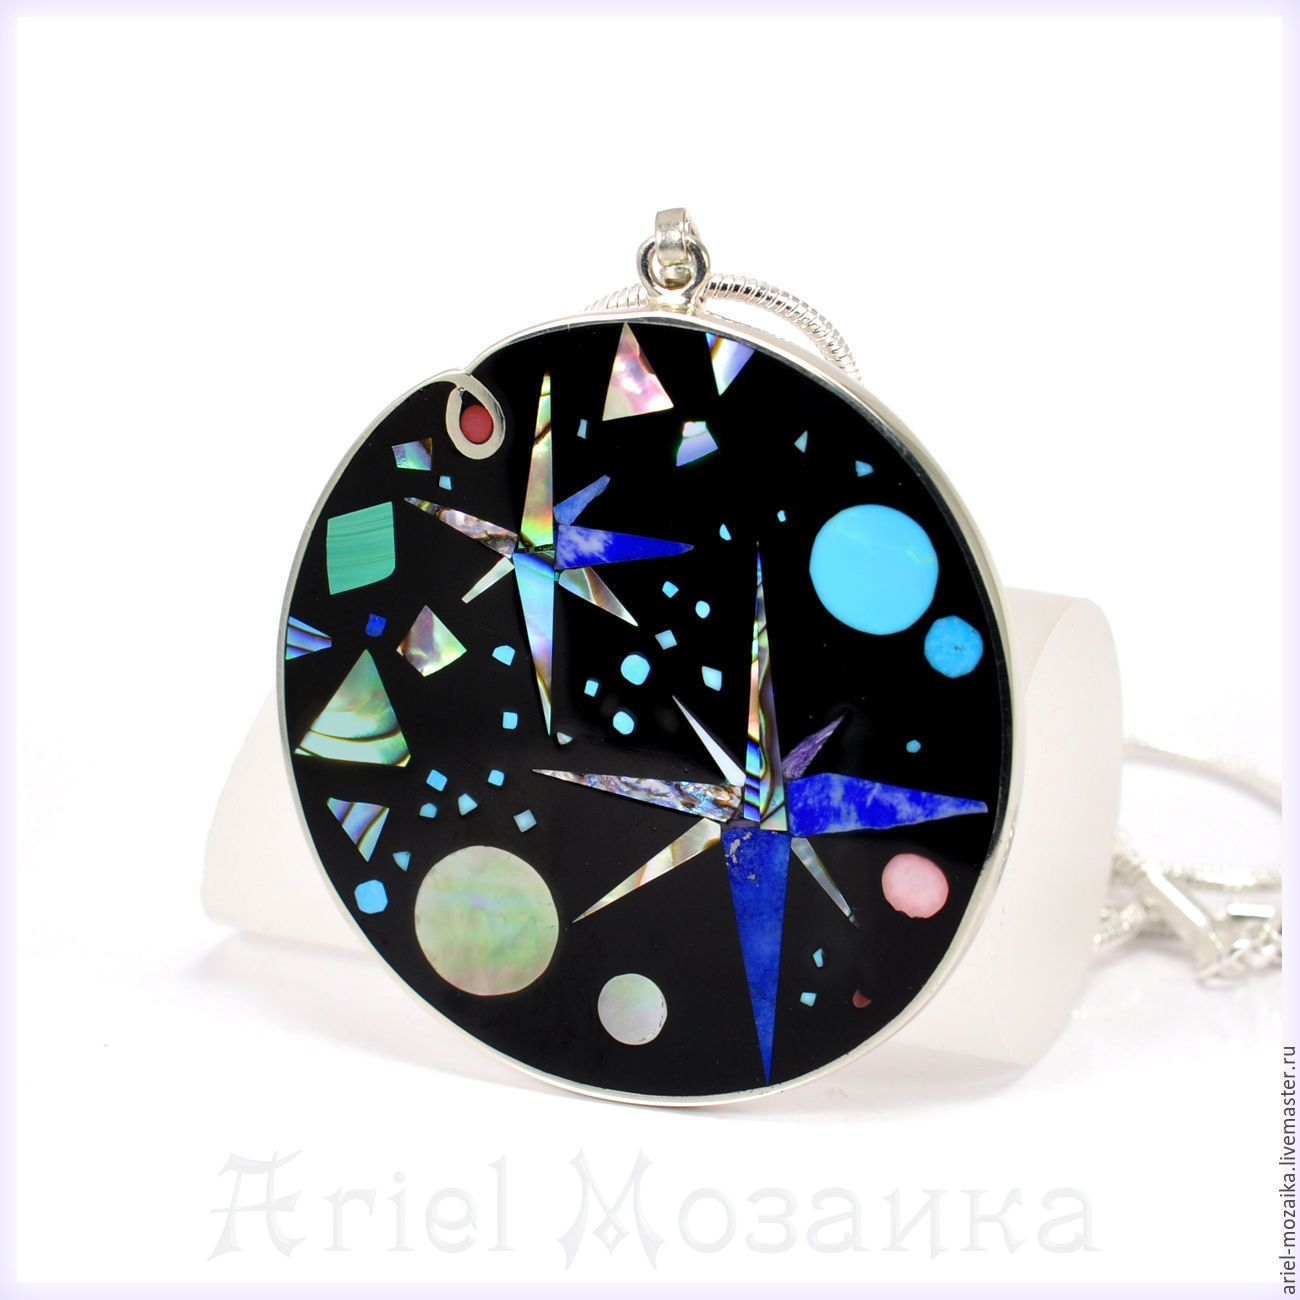 Pendant `Space` ARIEL - Alena - Moscow MOSAIC Pendant big Pendant with turquoise Pendant with charoite Pendant with mother of pearl Pendant with lapis lazuli Pendant - Mosaic from natural stones